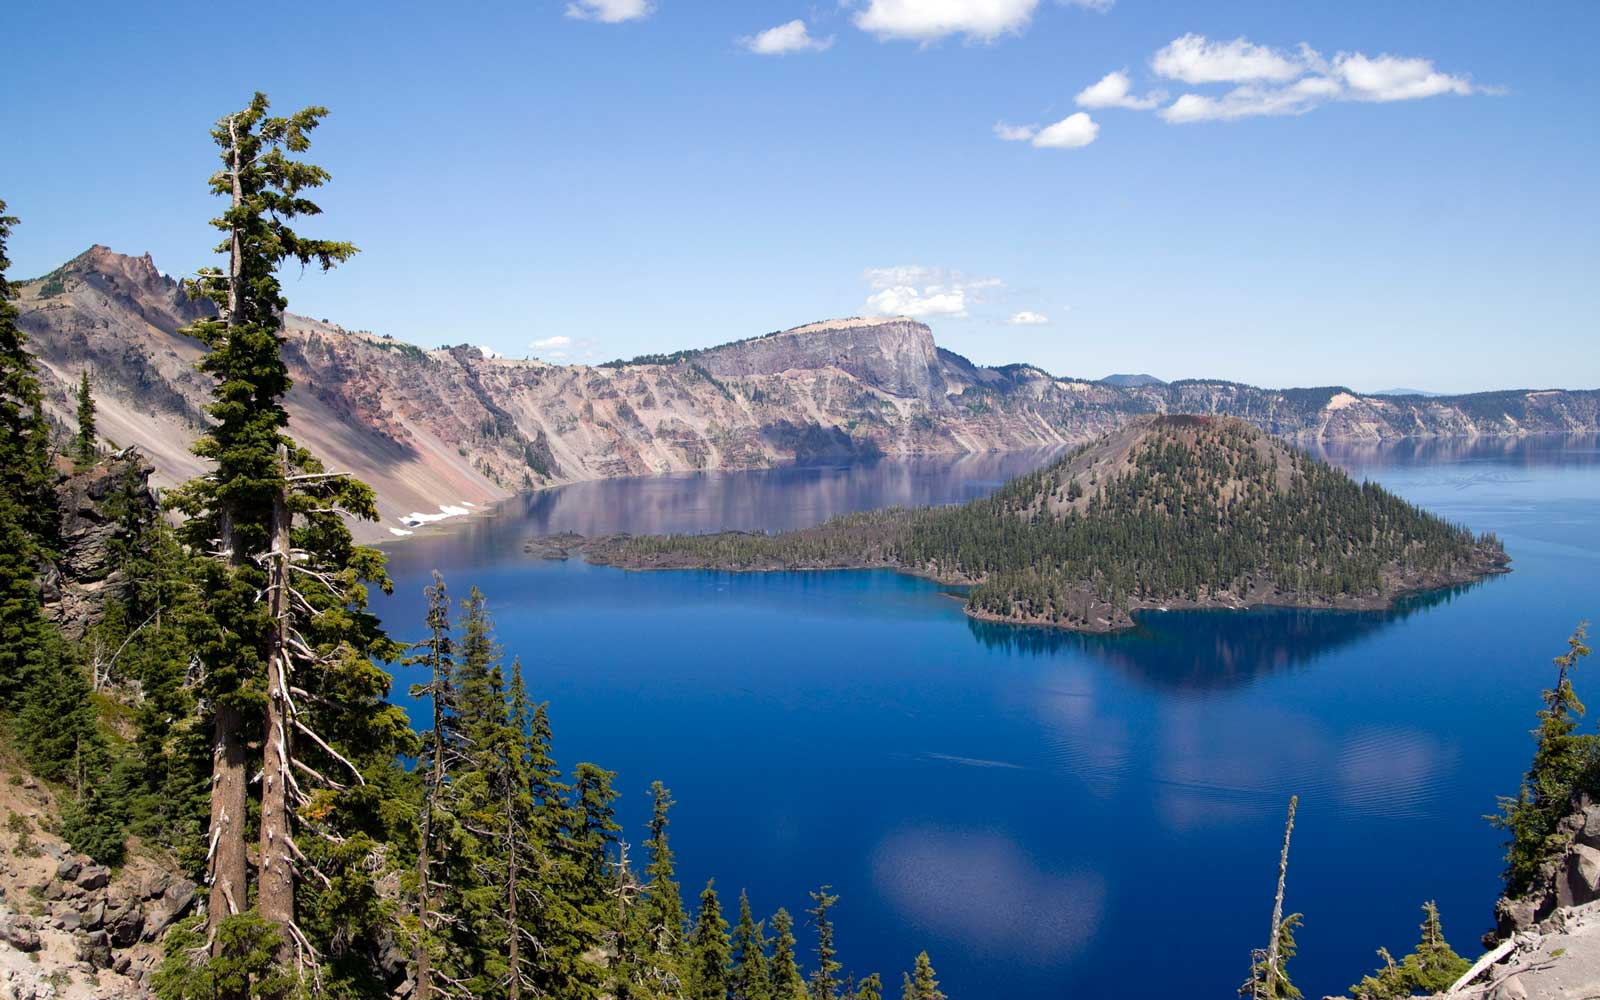 Crater Lake Oregon in the United States